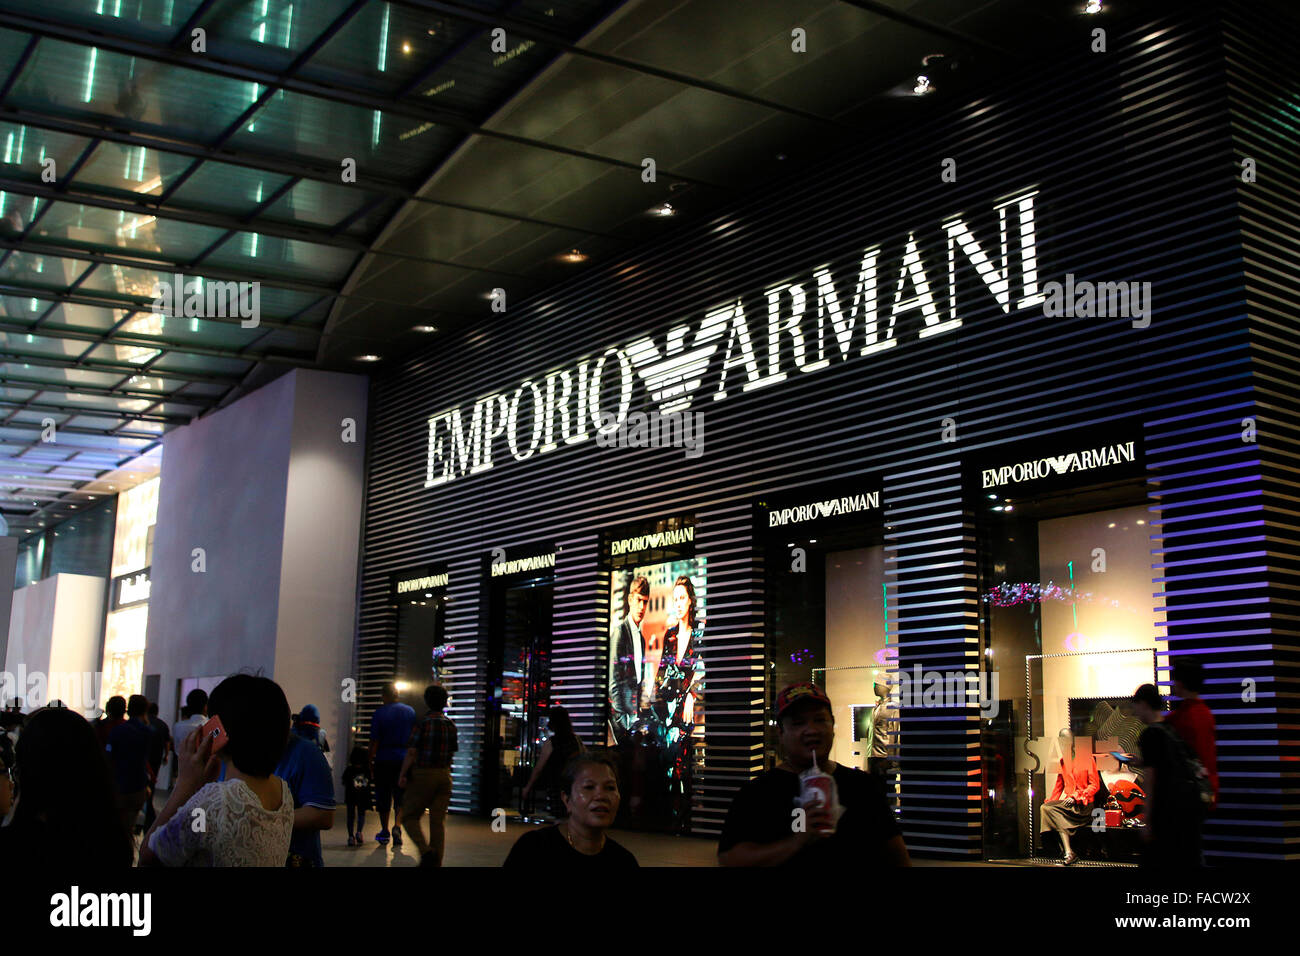 Emporio Armani Store at Orchard Street - Stock Image